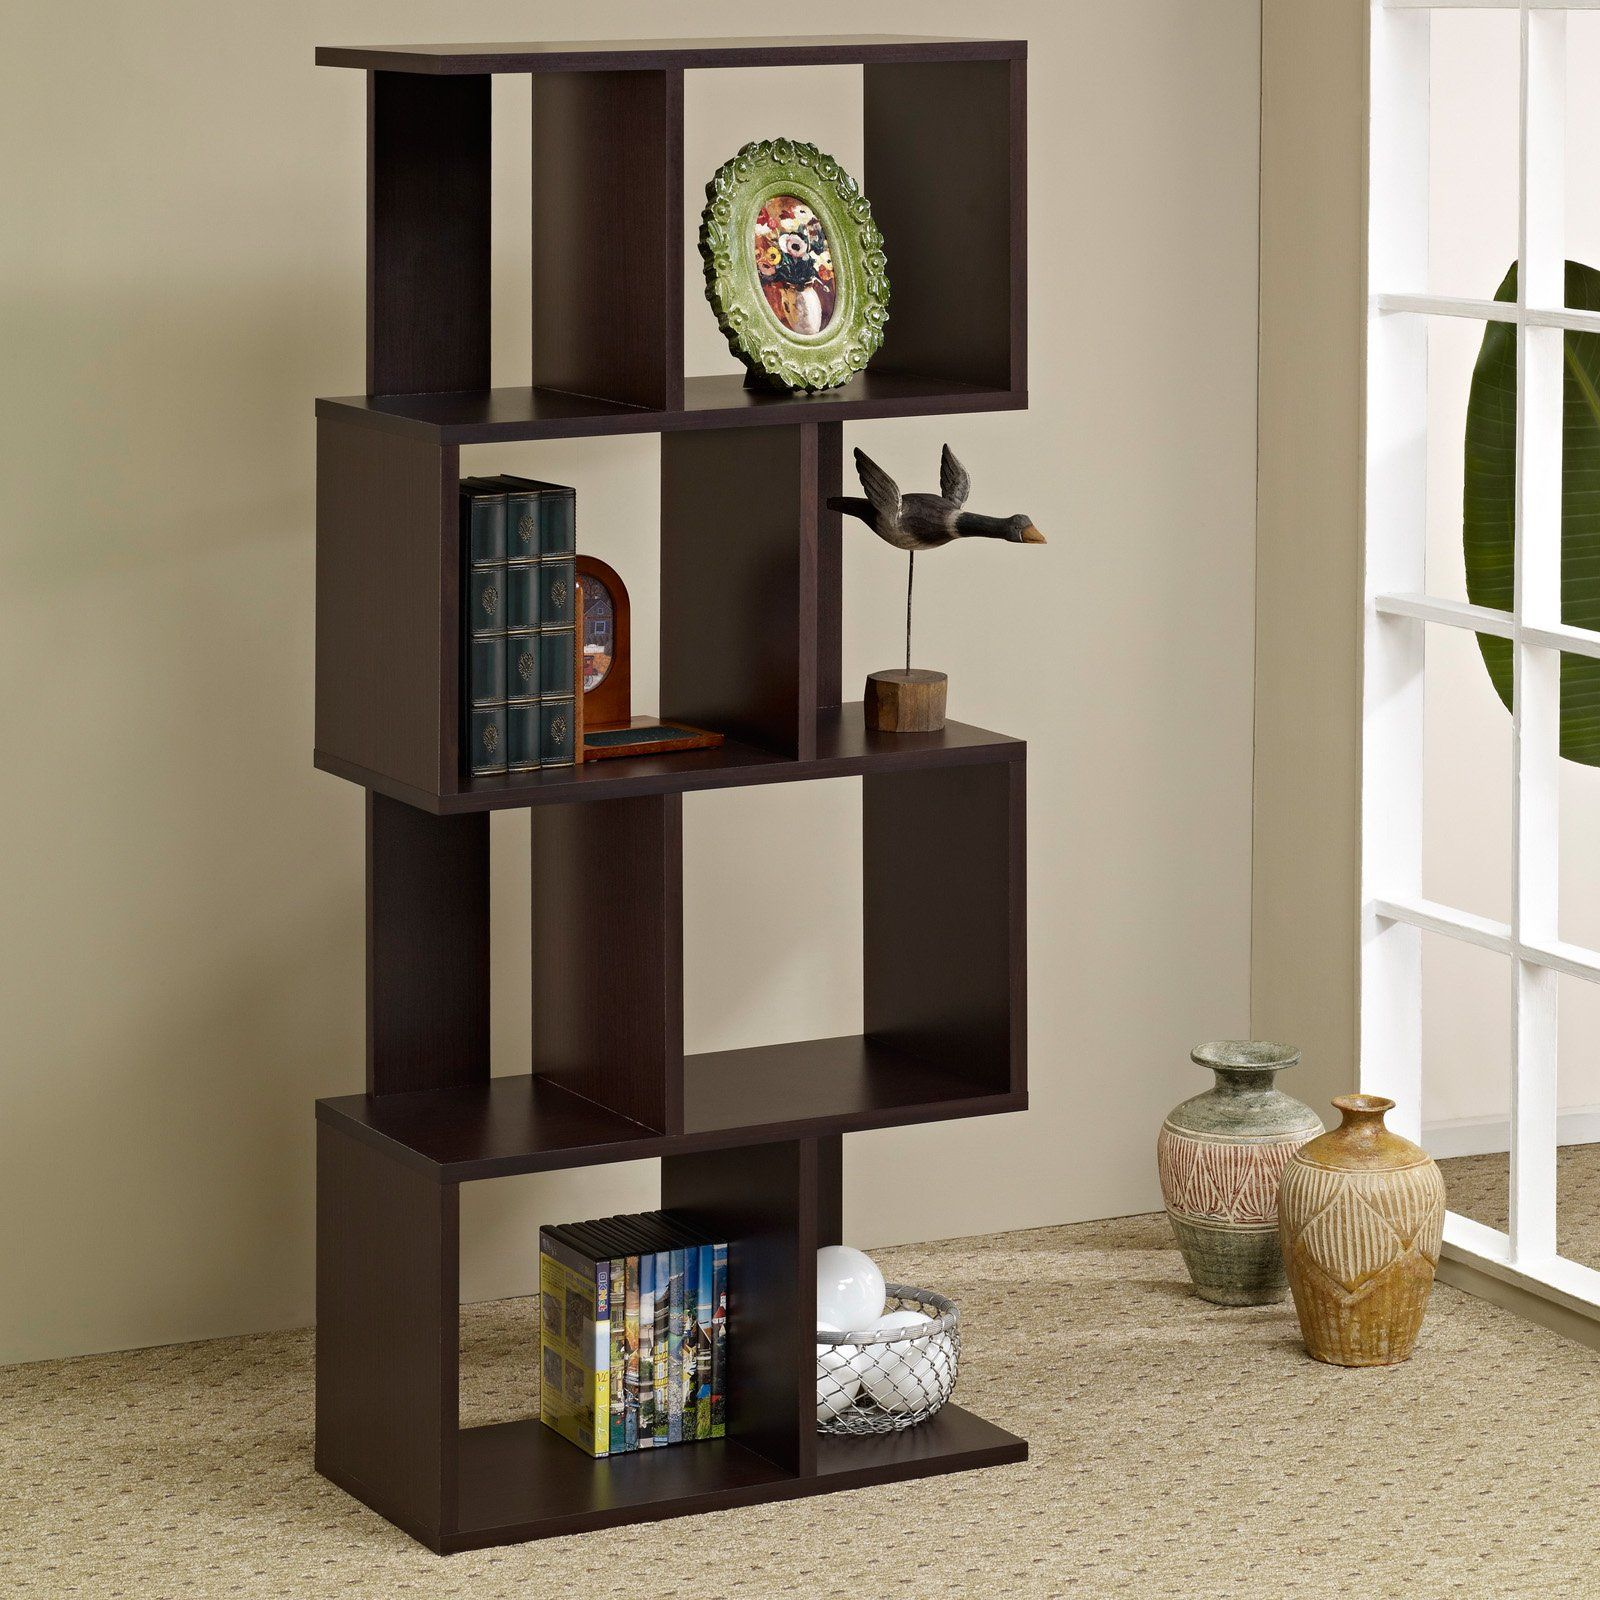 furniture for shelf bookcase great home book divider room dividers